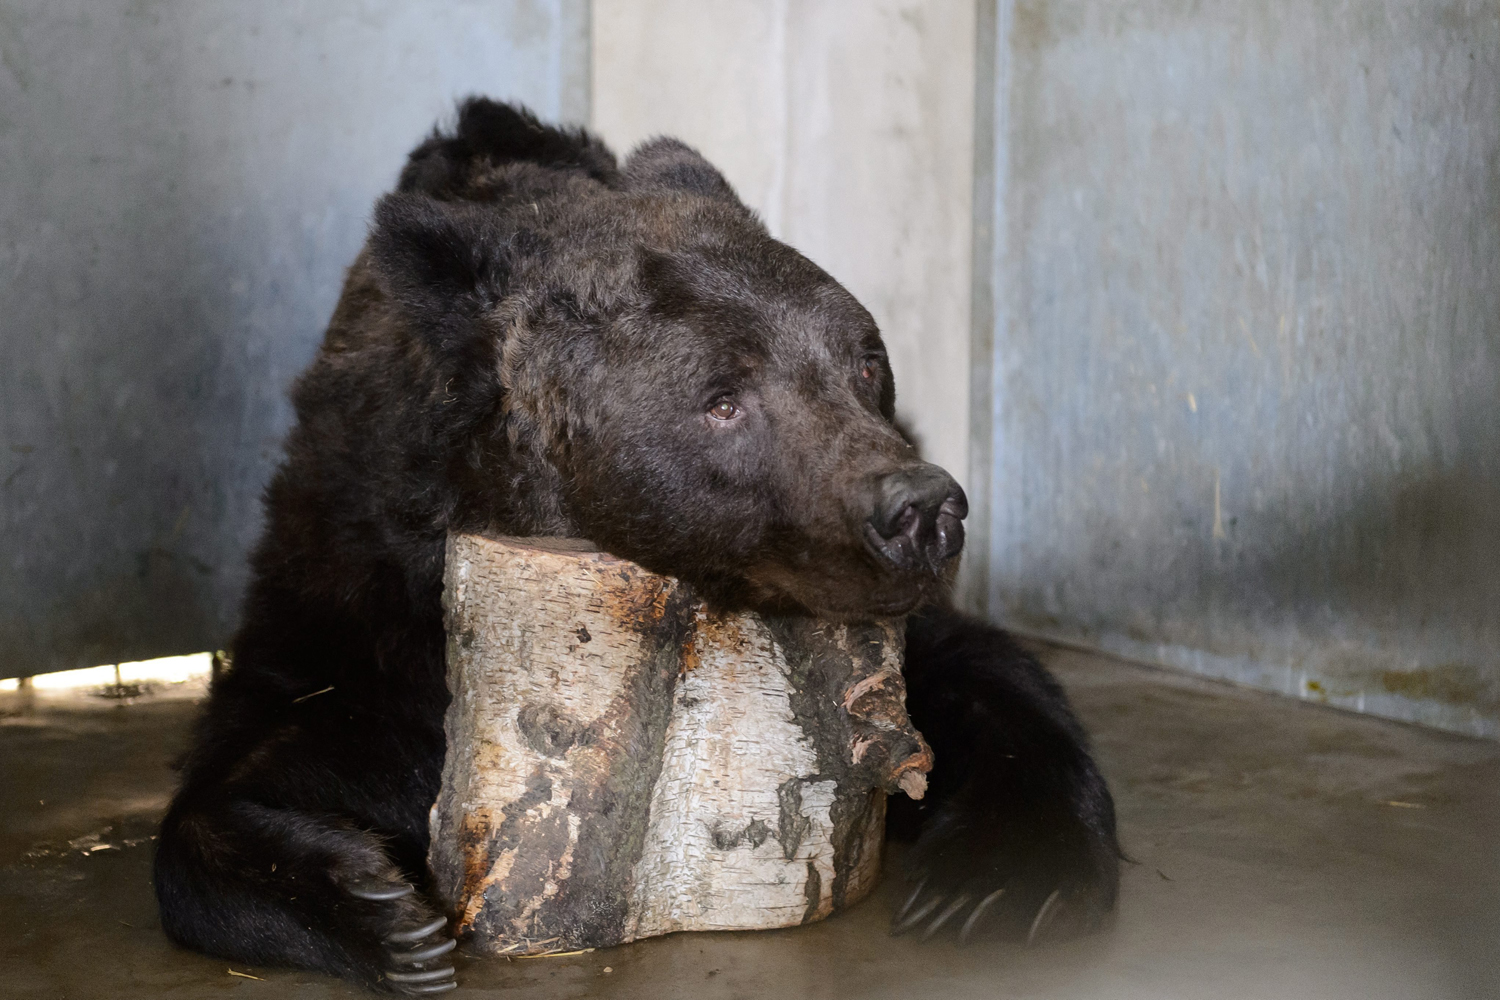 Sept. 5, 2014. Misha, a brown bear (Ursus arctos) waits for his first in a lifetime dental treatments in his enclosure in the zoo of Poznan, Poland.